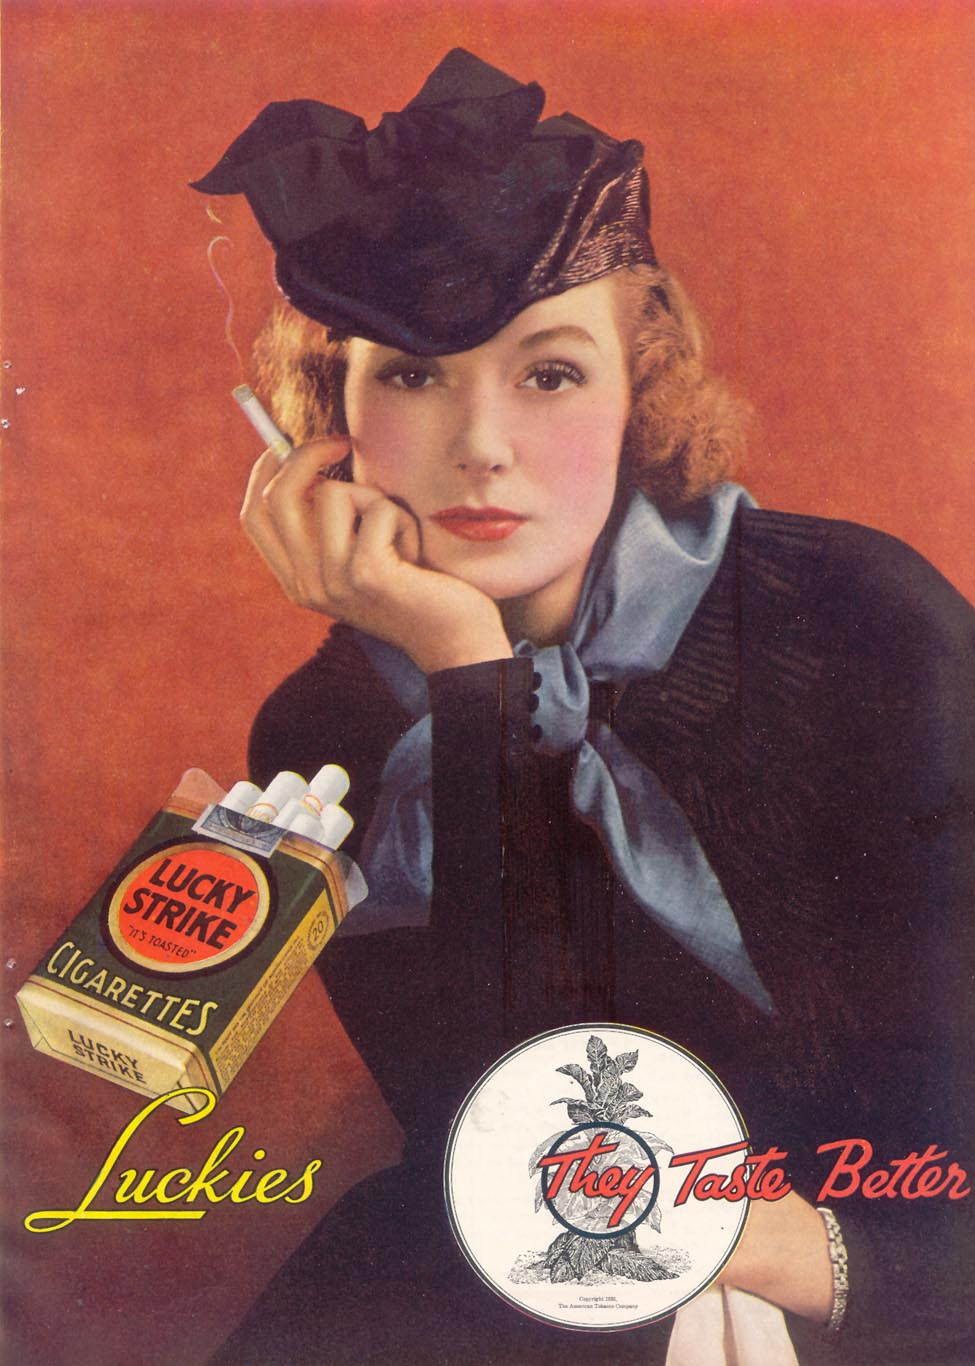 LUCKY STRIKE CIGARETTES GOOD HOUSEKEEPING 03/01/1935